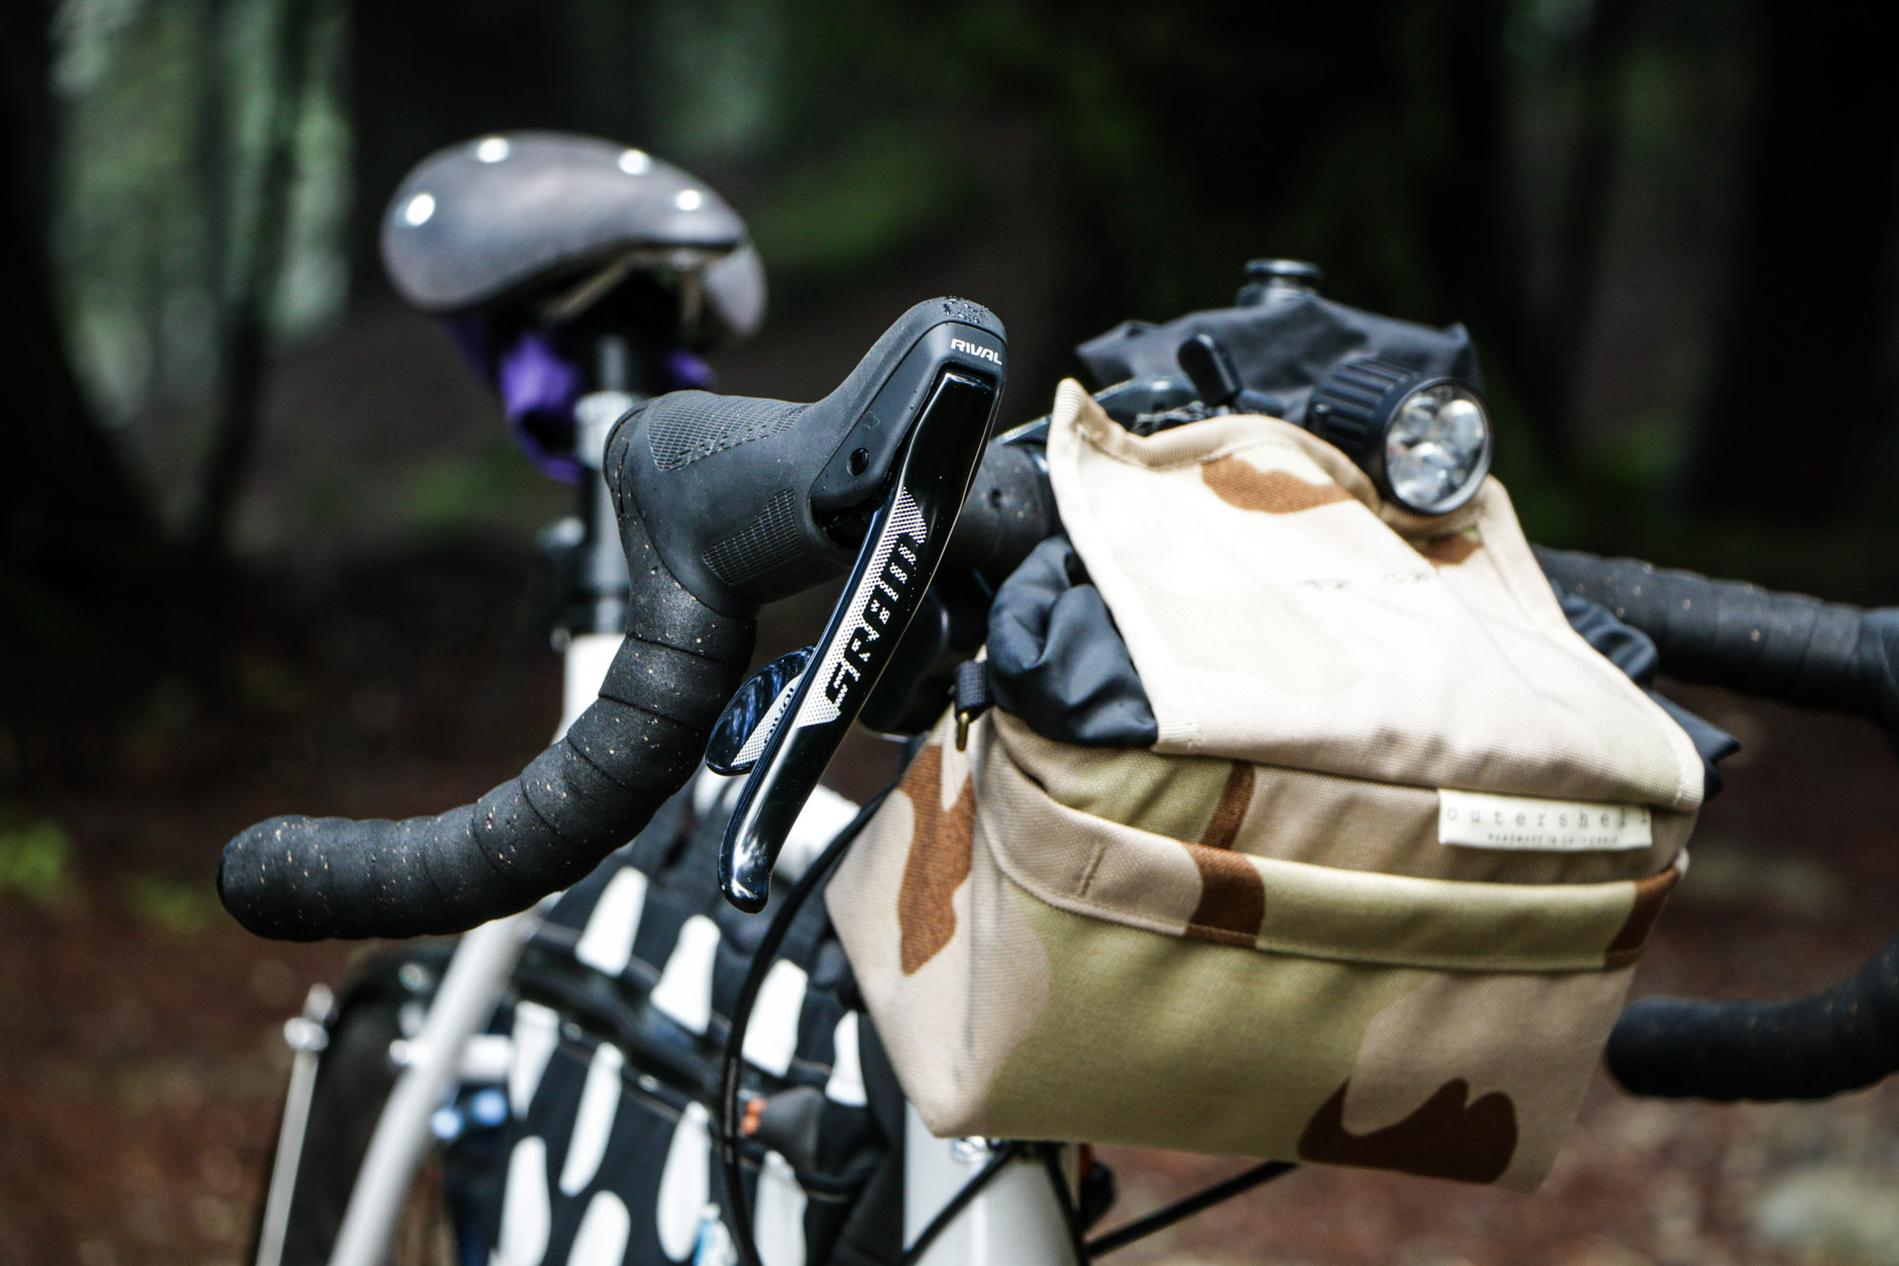 The Surly Midnight Special is Truly a Fat Tire Road Bike –Morgan Taylor